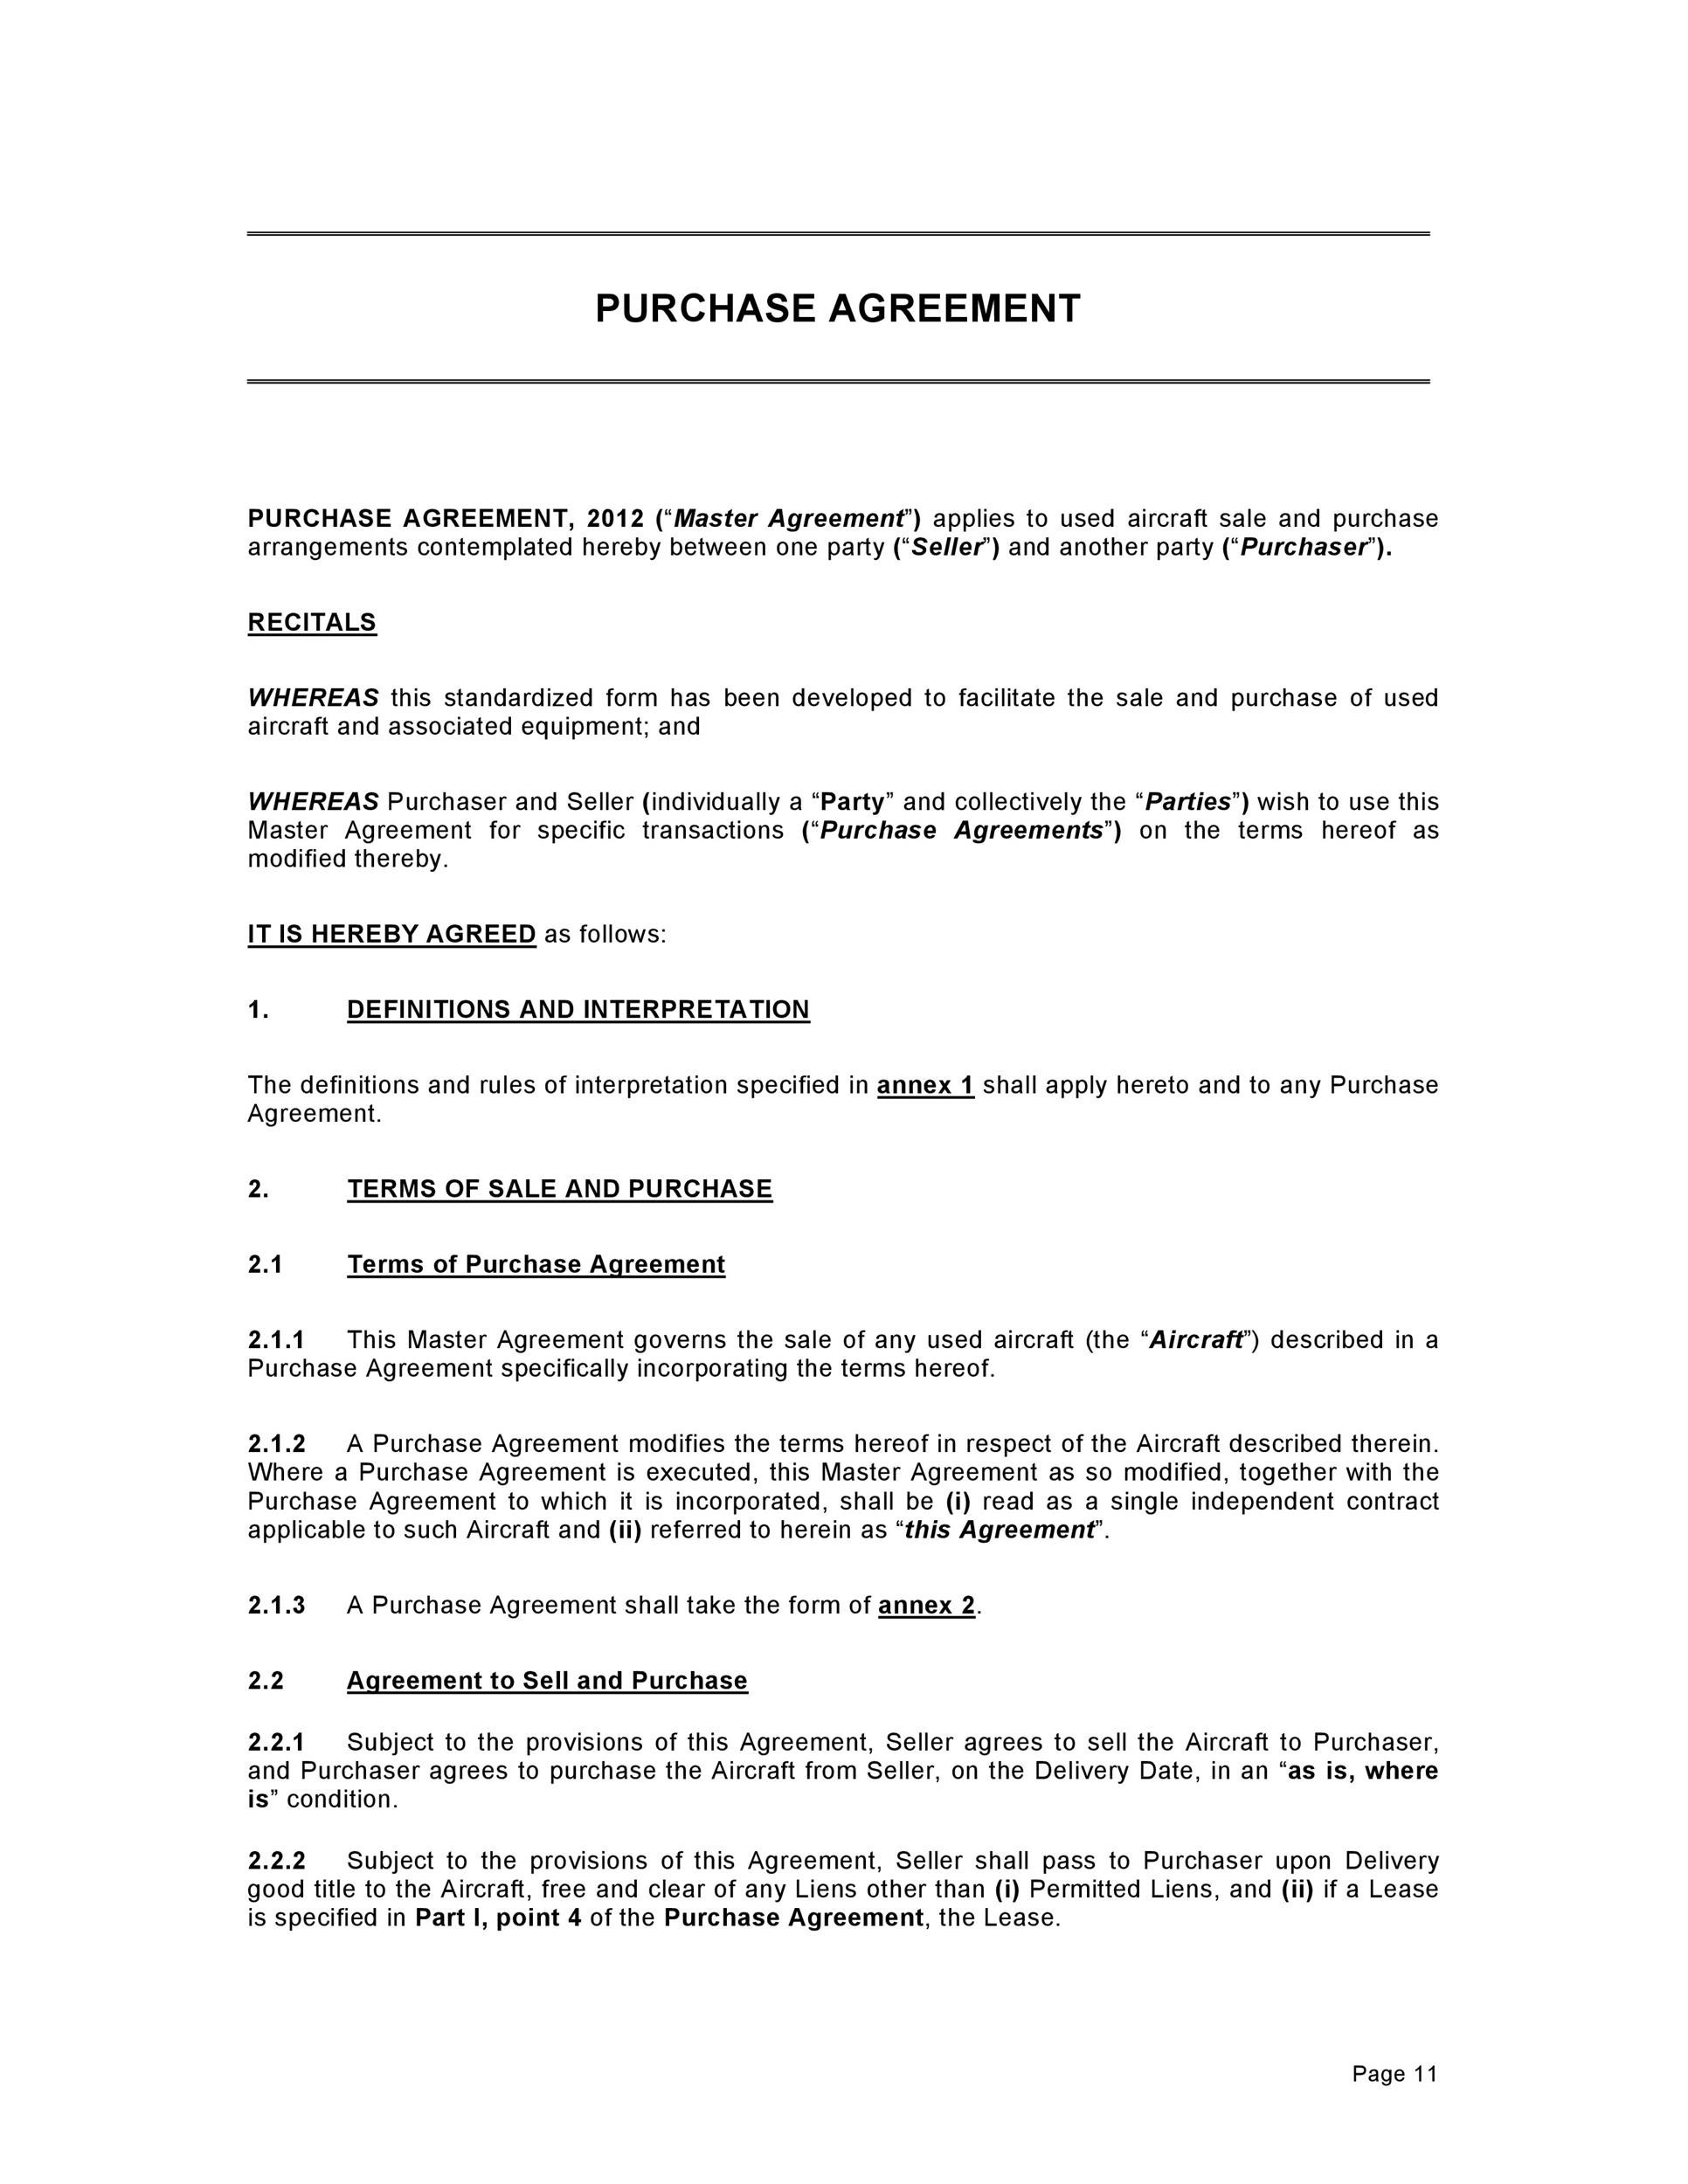 37 simple purchase agreement templates real estate business free purchase agreement template 11 flashek Gallery